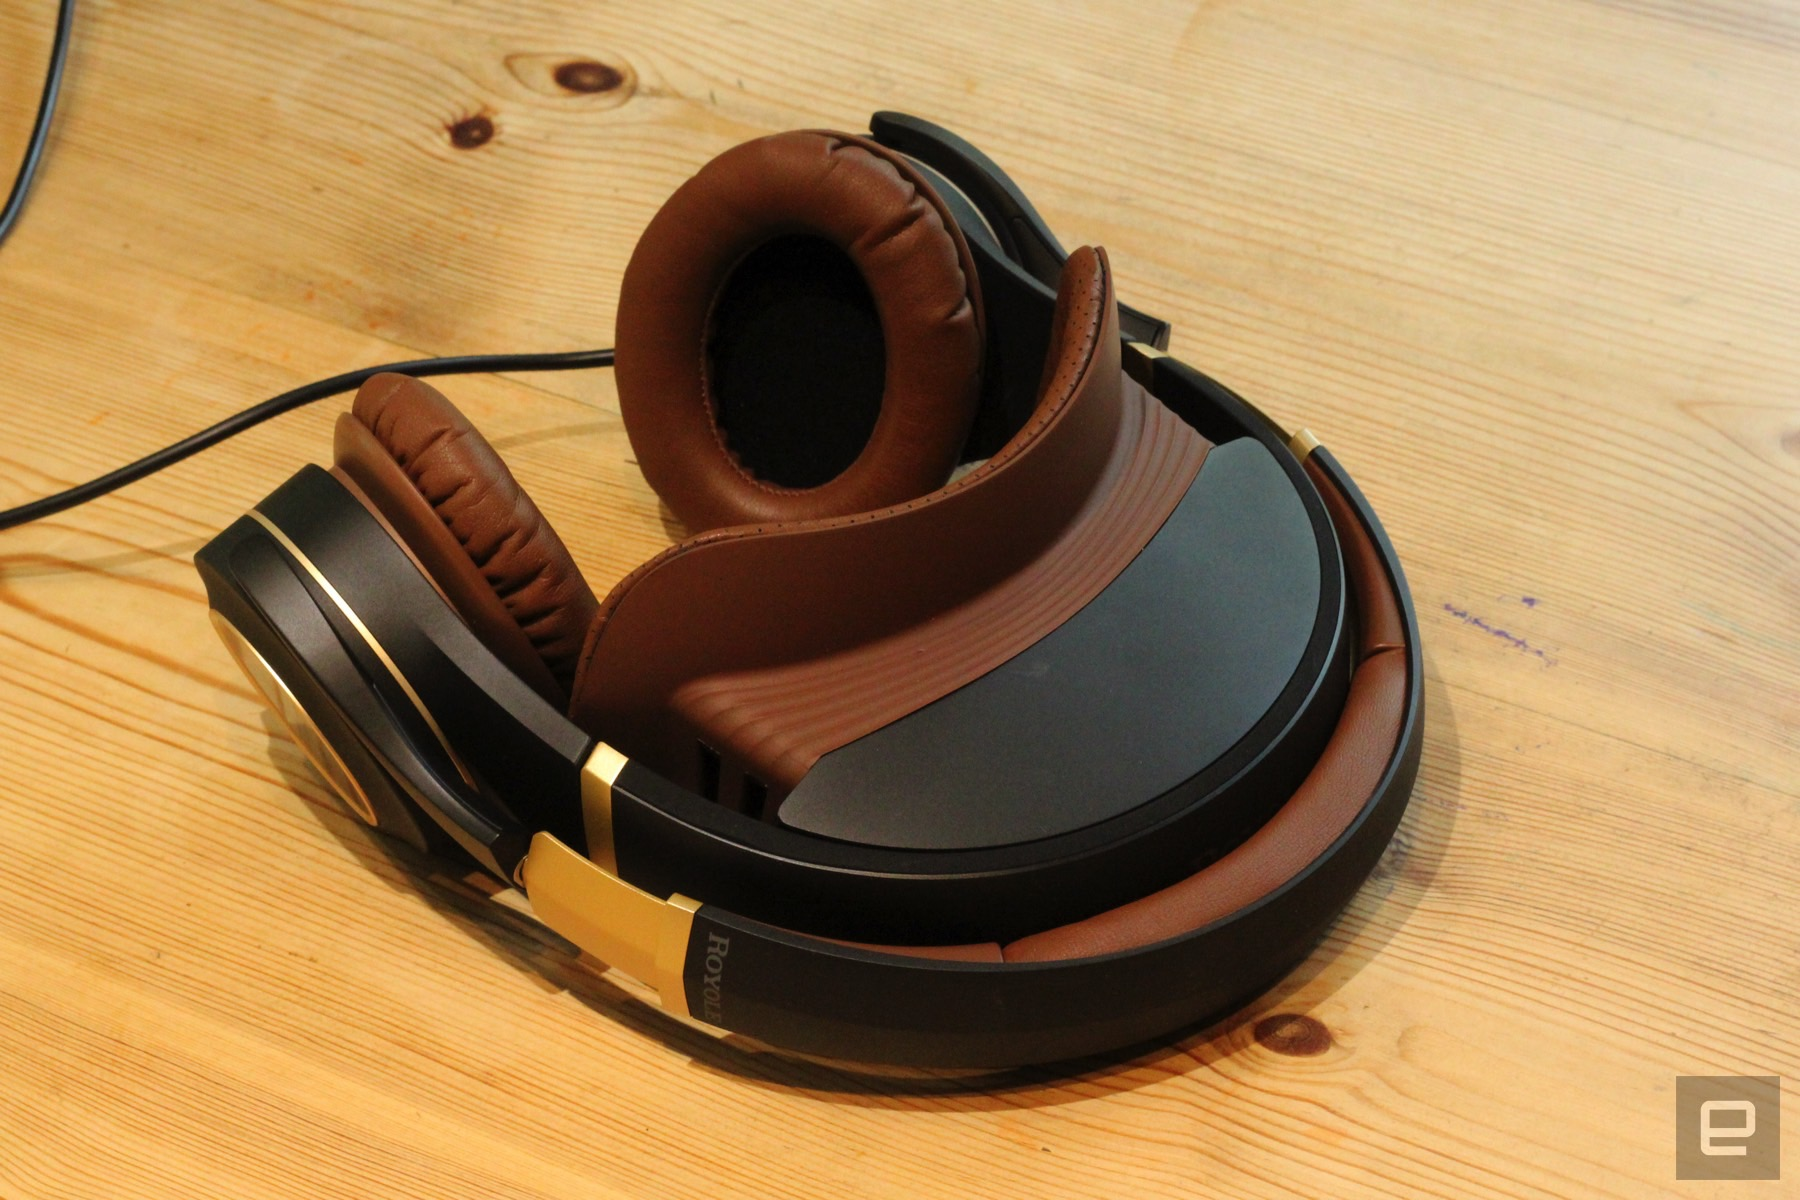 Royole Moon Royole S Personal Cinema Headset Carries A Heavy Premium